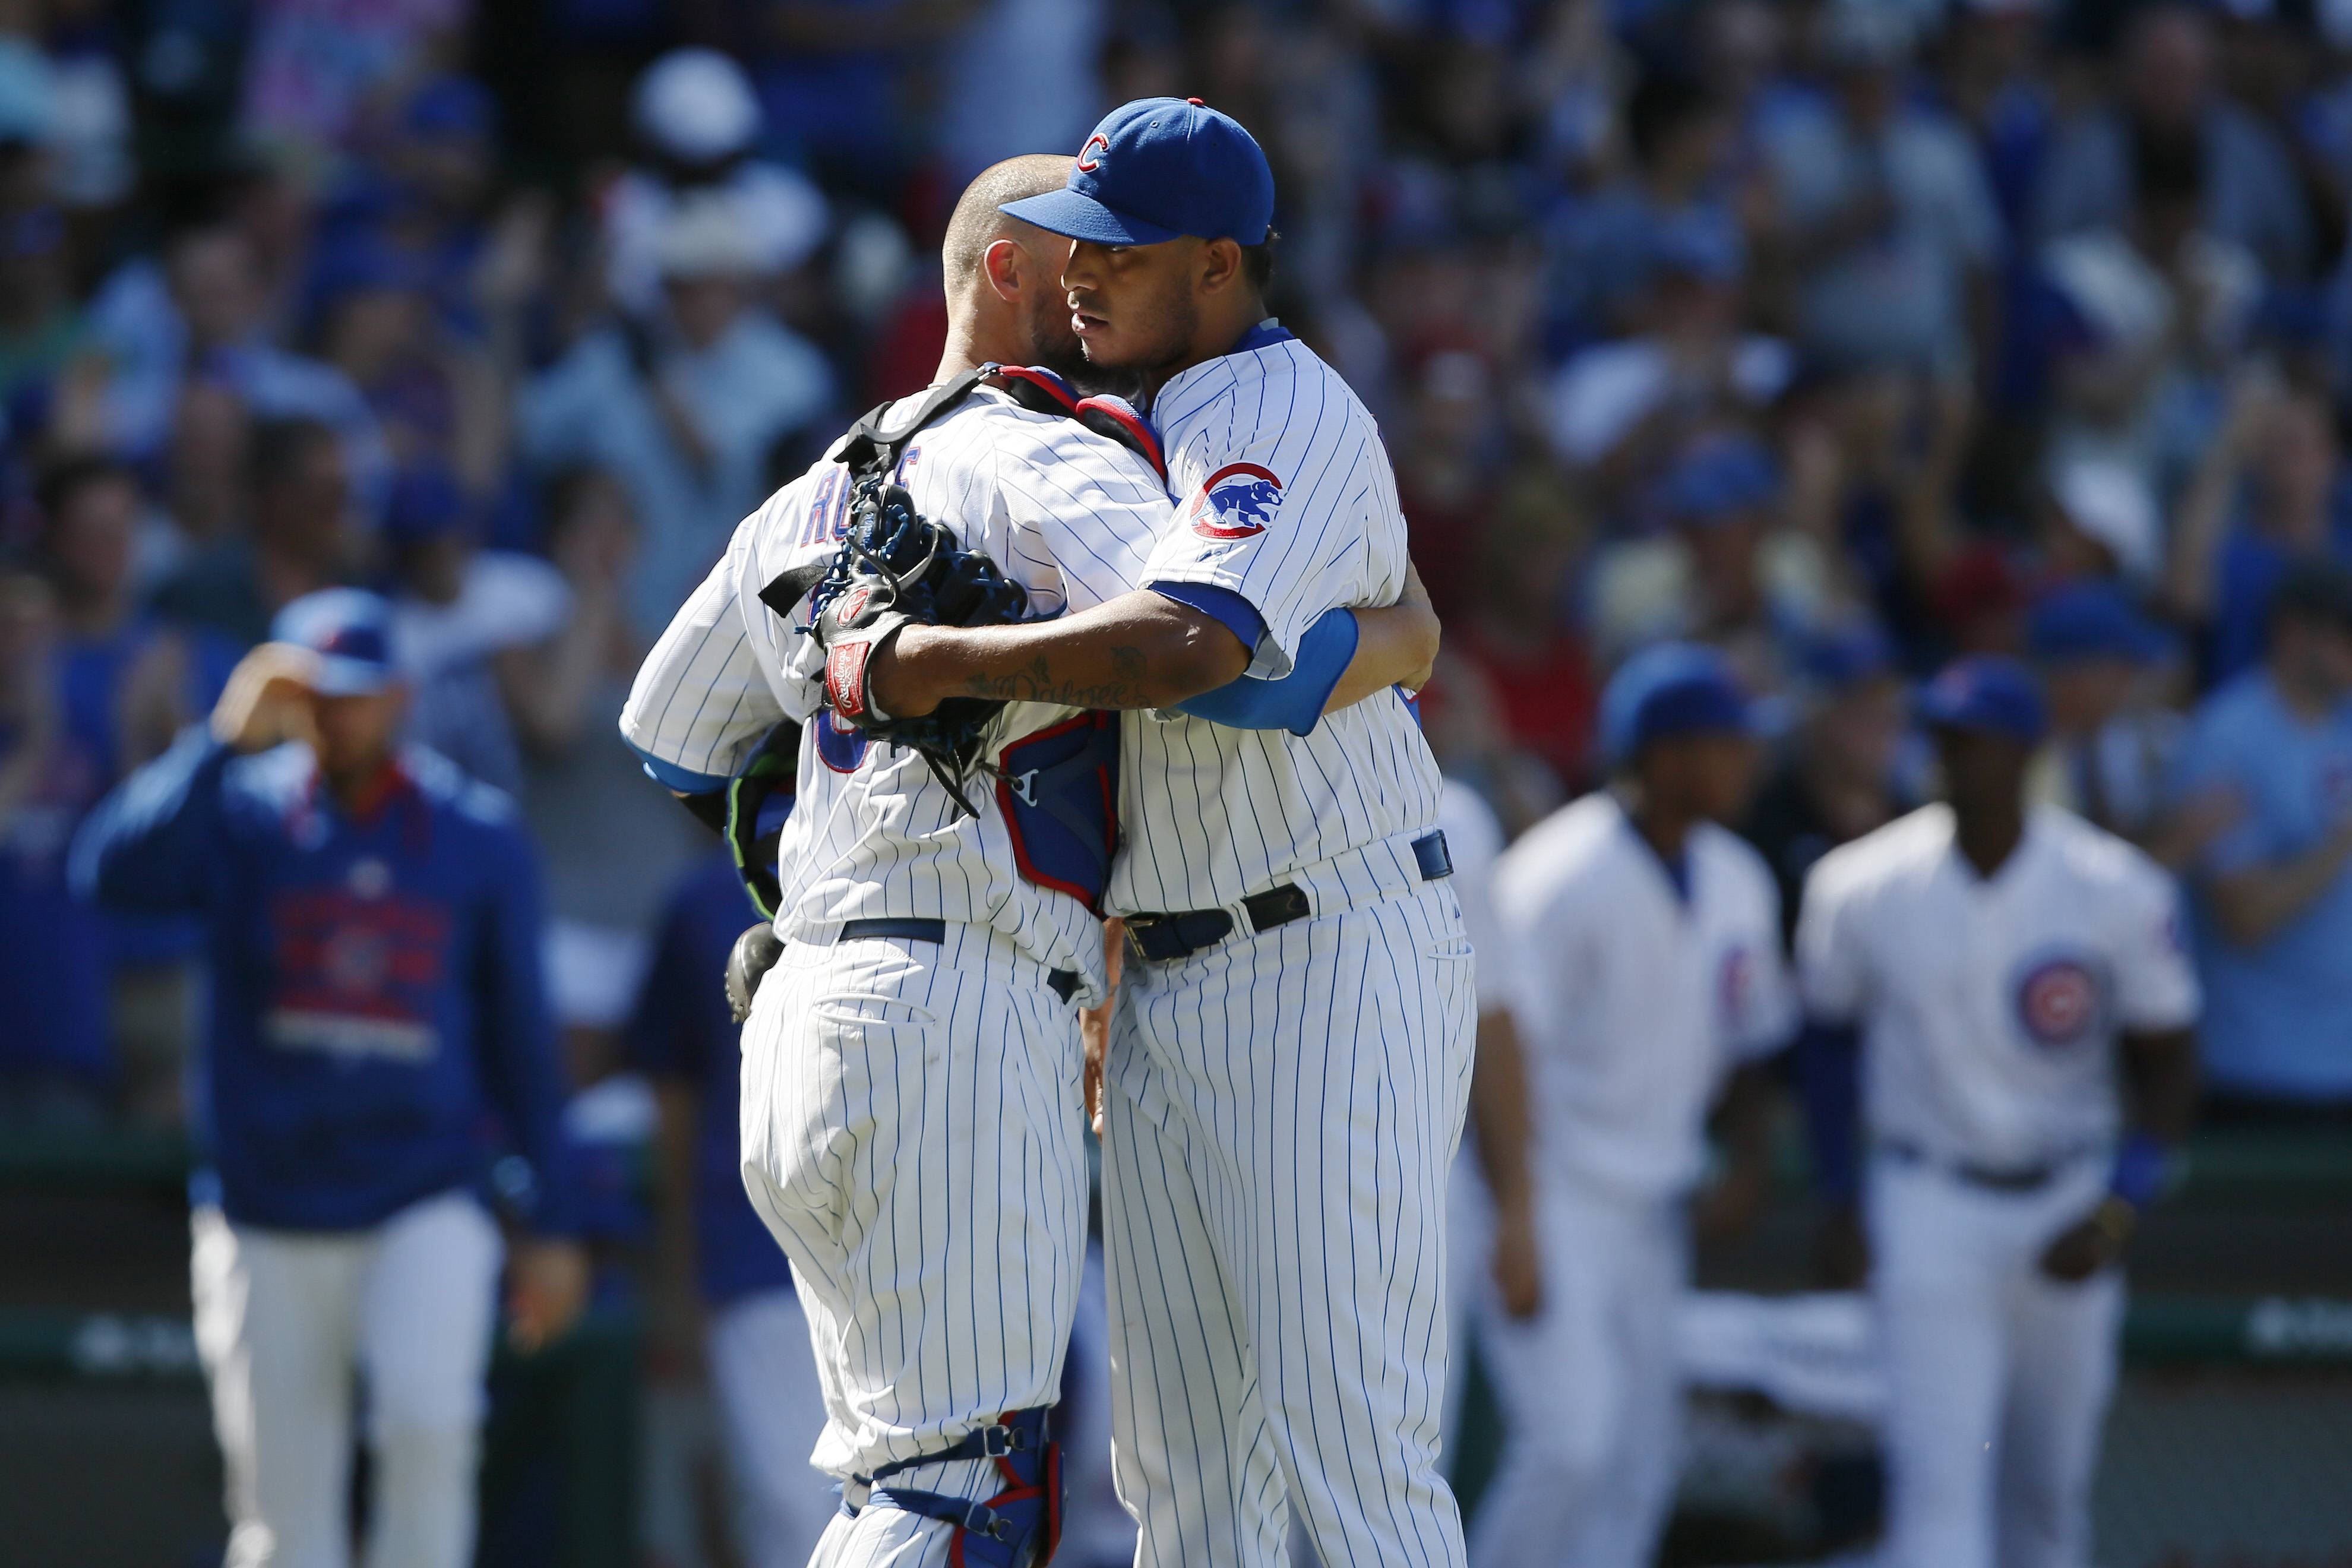 Chicago Cubs relief pitcher Hector Rondon, right, celebrates with catcher David Ross after they defeated the Colorado Rockies in a baseball game in Chicago, Wednesday, July 29, 2015. The Cubs won 3-2.